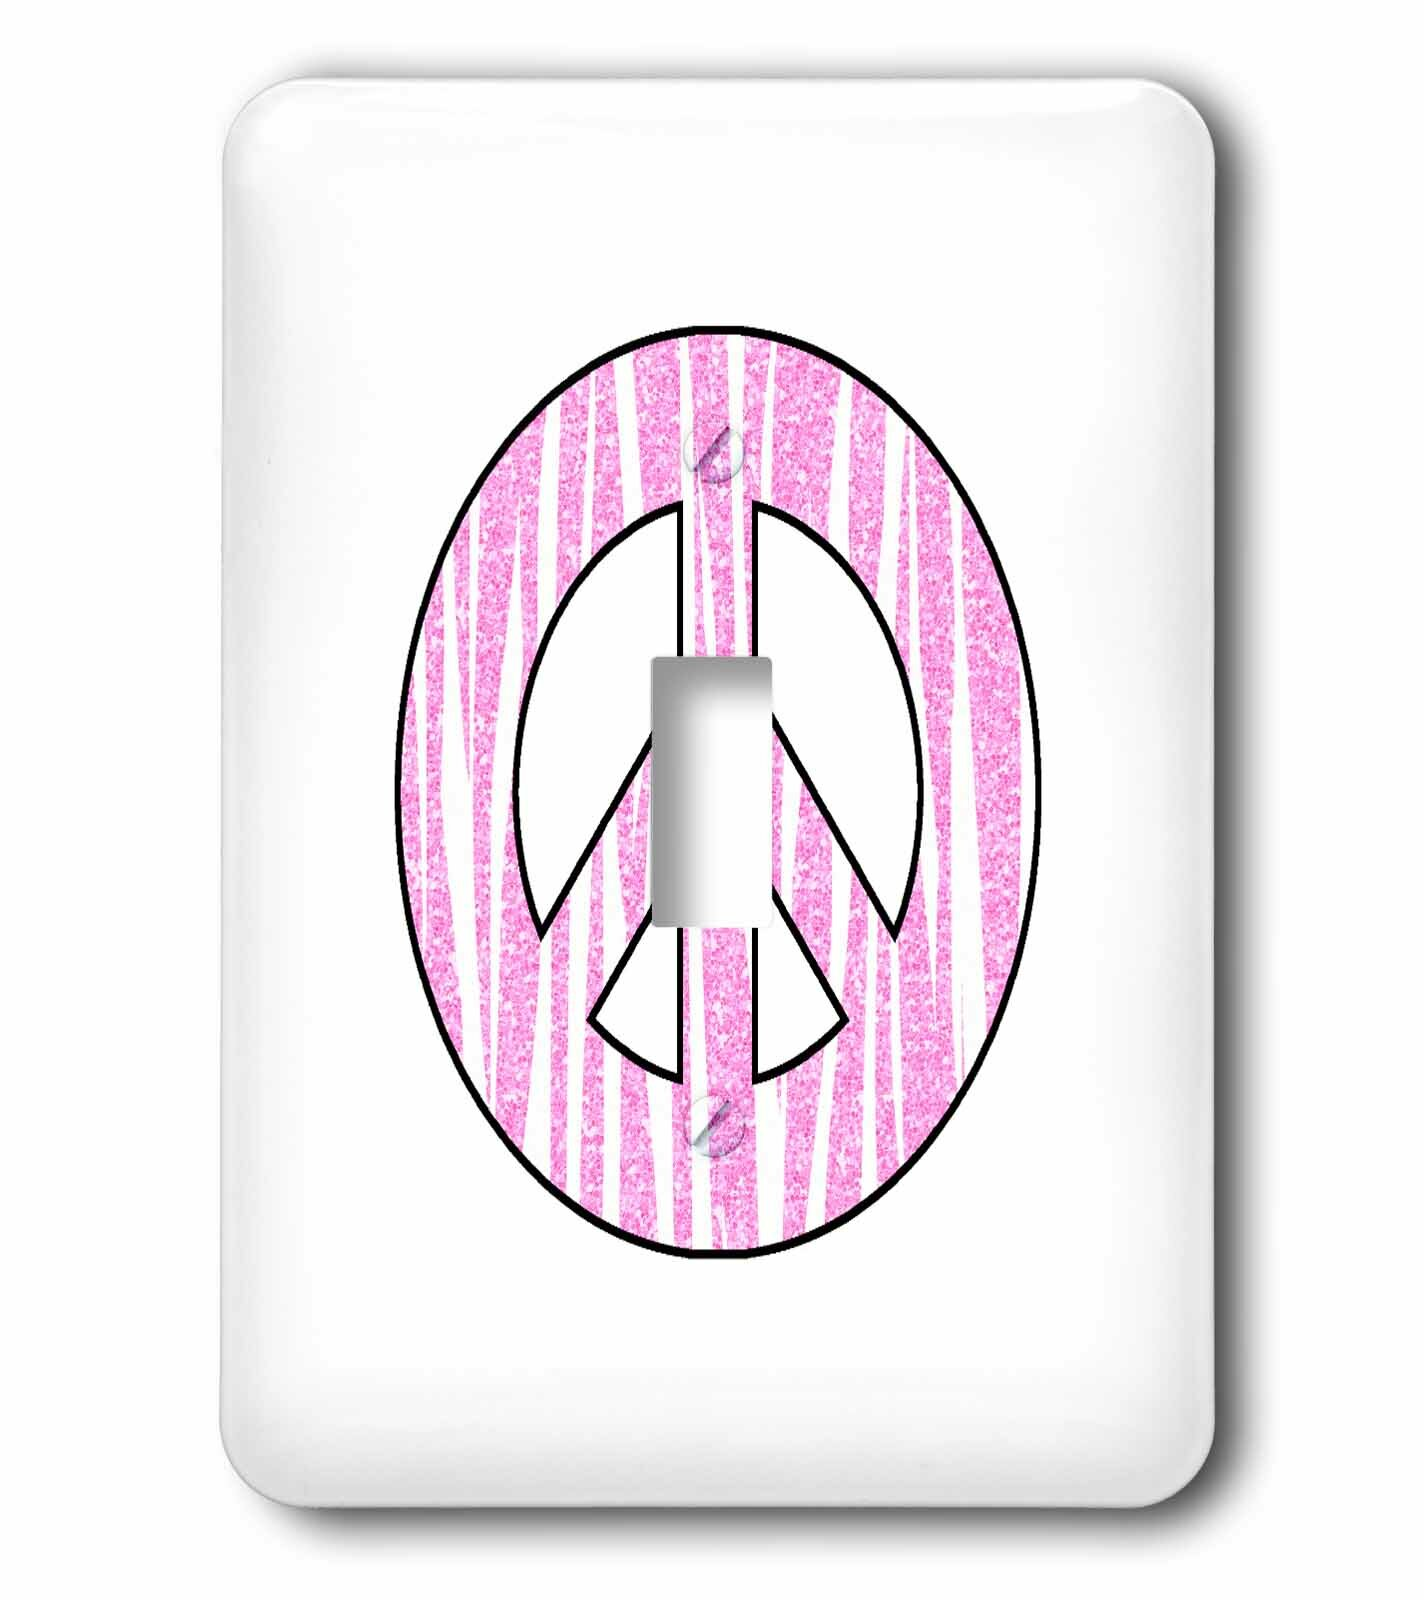 3drose Zebra Print Peace Sign Girly Chic 1 Gang Toggle Light Switch Wall Plate Wayfair